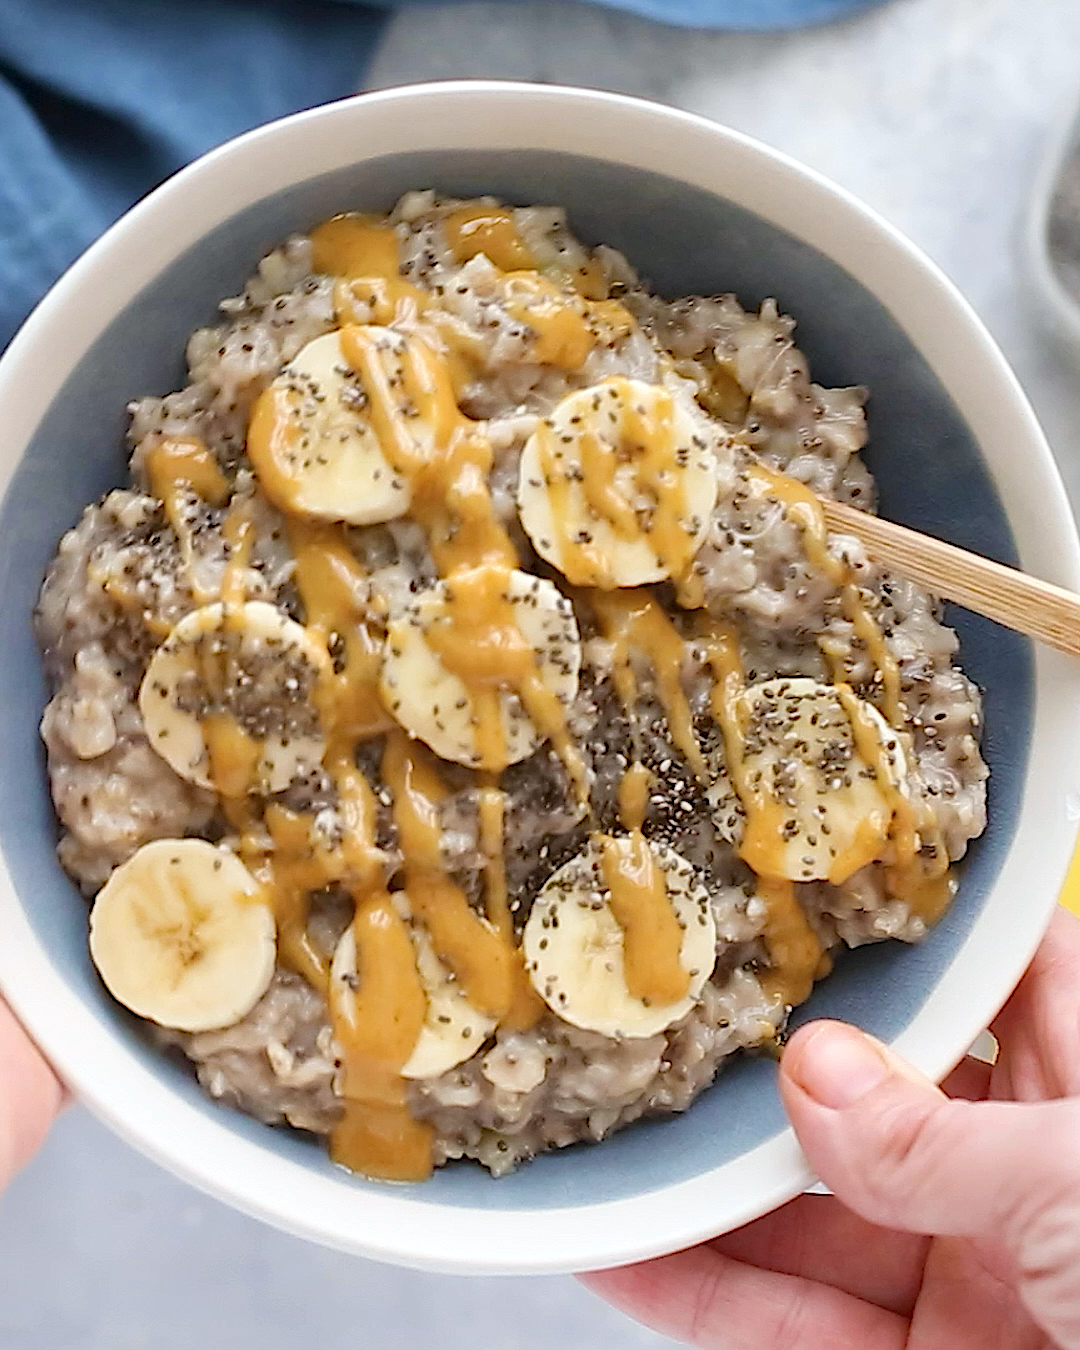 The ultimate healthy breakfast recipe, this peanut butter banana oatmeal is creamy, voluminous and will keep you full all morning long! Plus it only takes about 10 minutes to make.  Each bowl has around 370 calories, 17 grams of fiber (woot!), and 11 grams of protein.